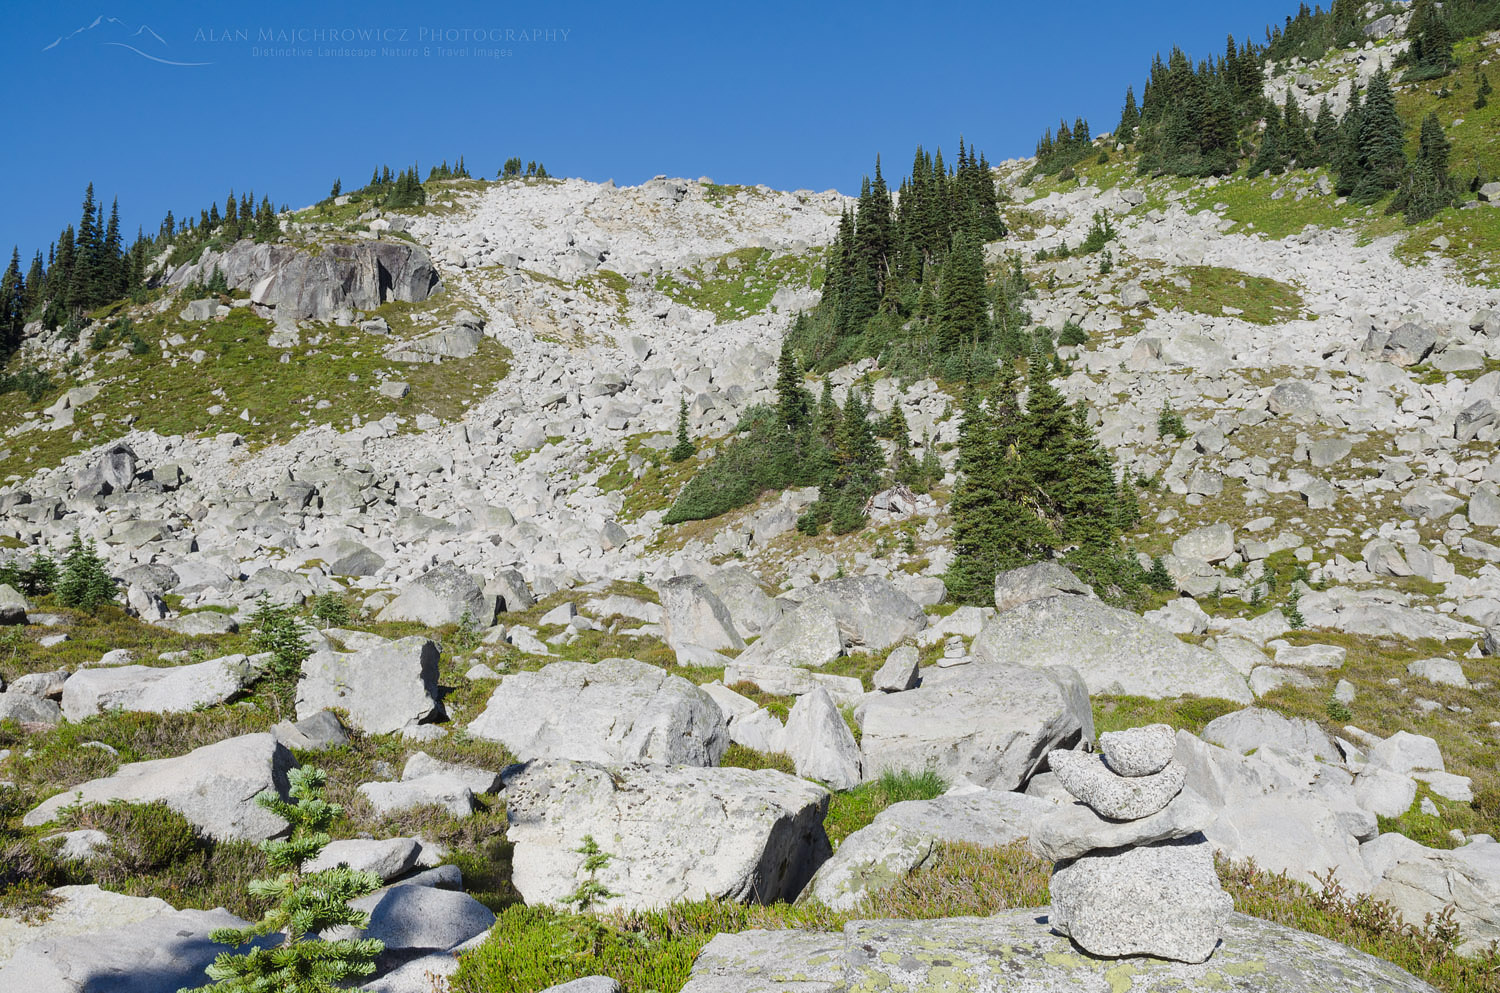 Boulders Marriott Basin Coast Mountains British Columbia